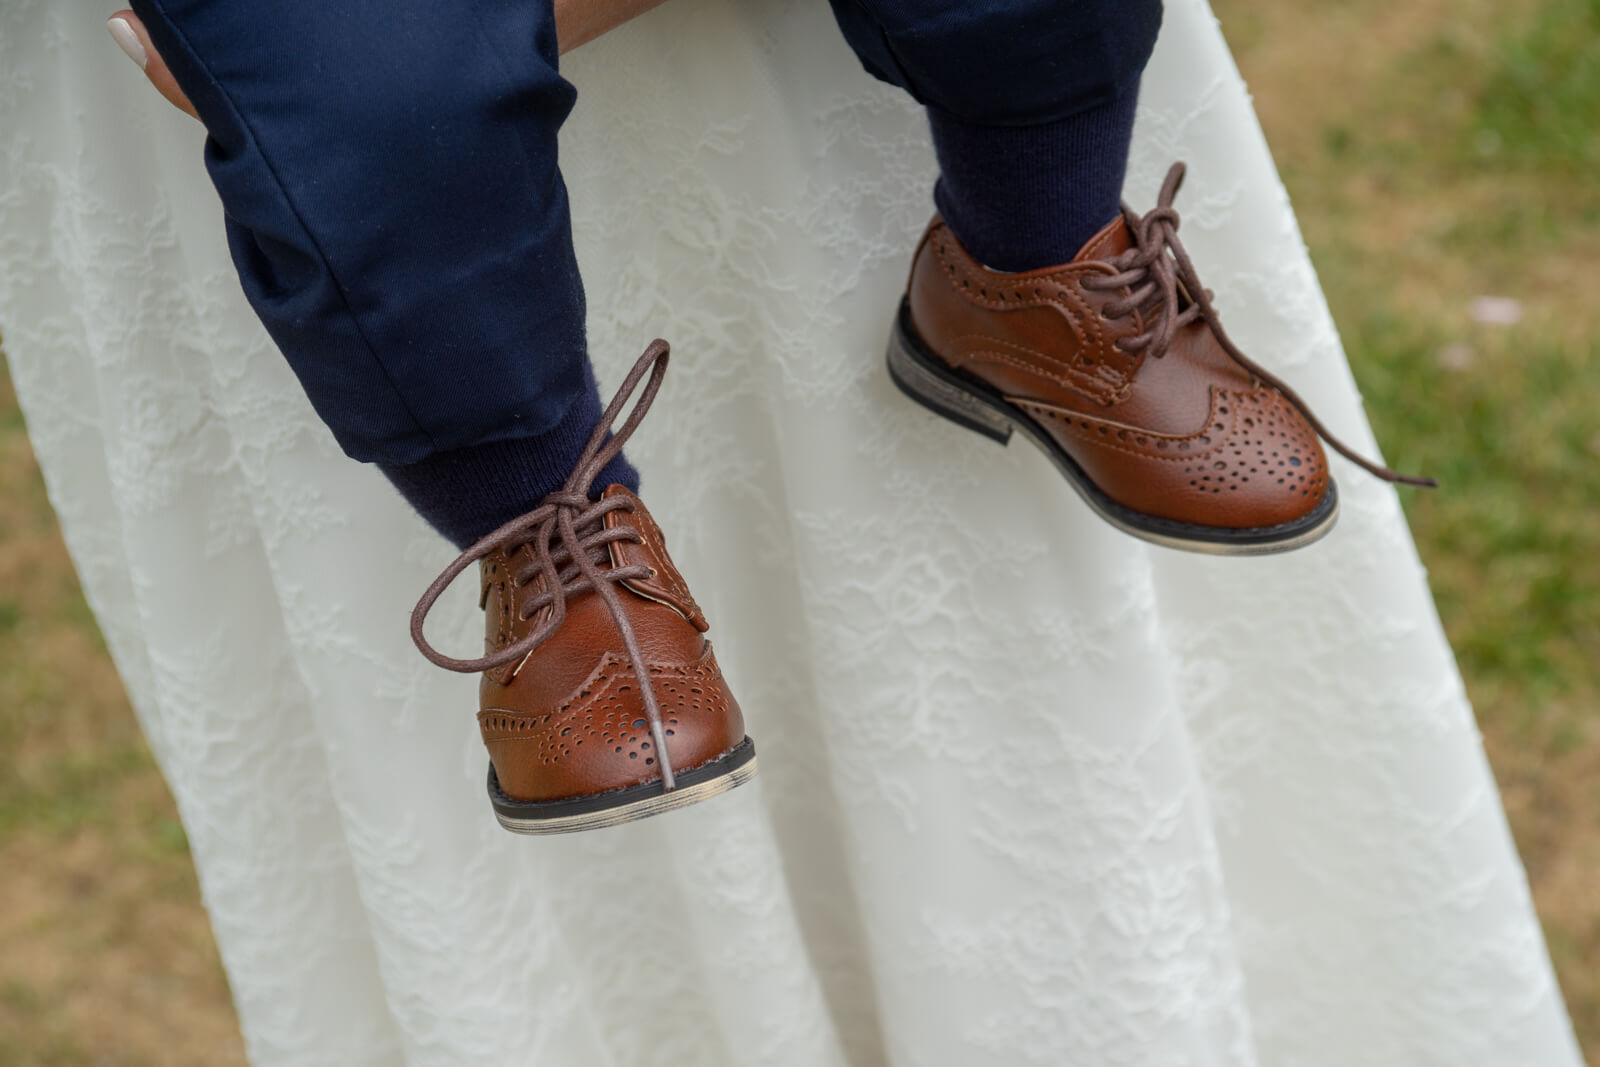 Baby's brown brogue shoes against his mum's white wedding dress